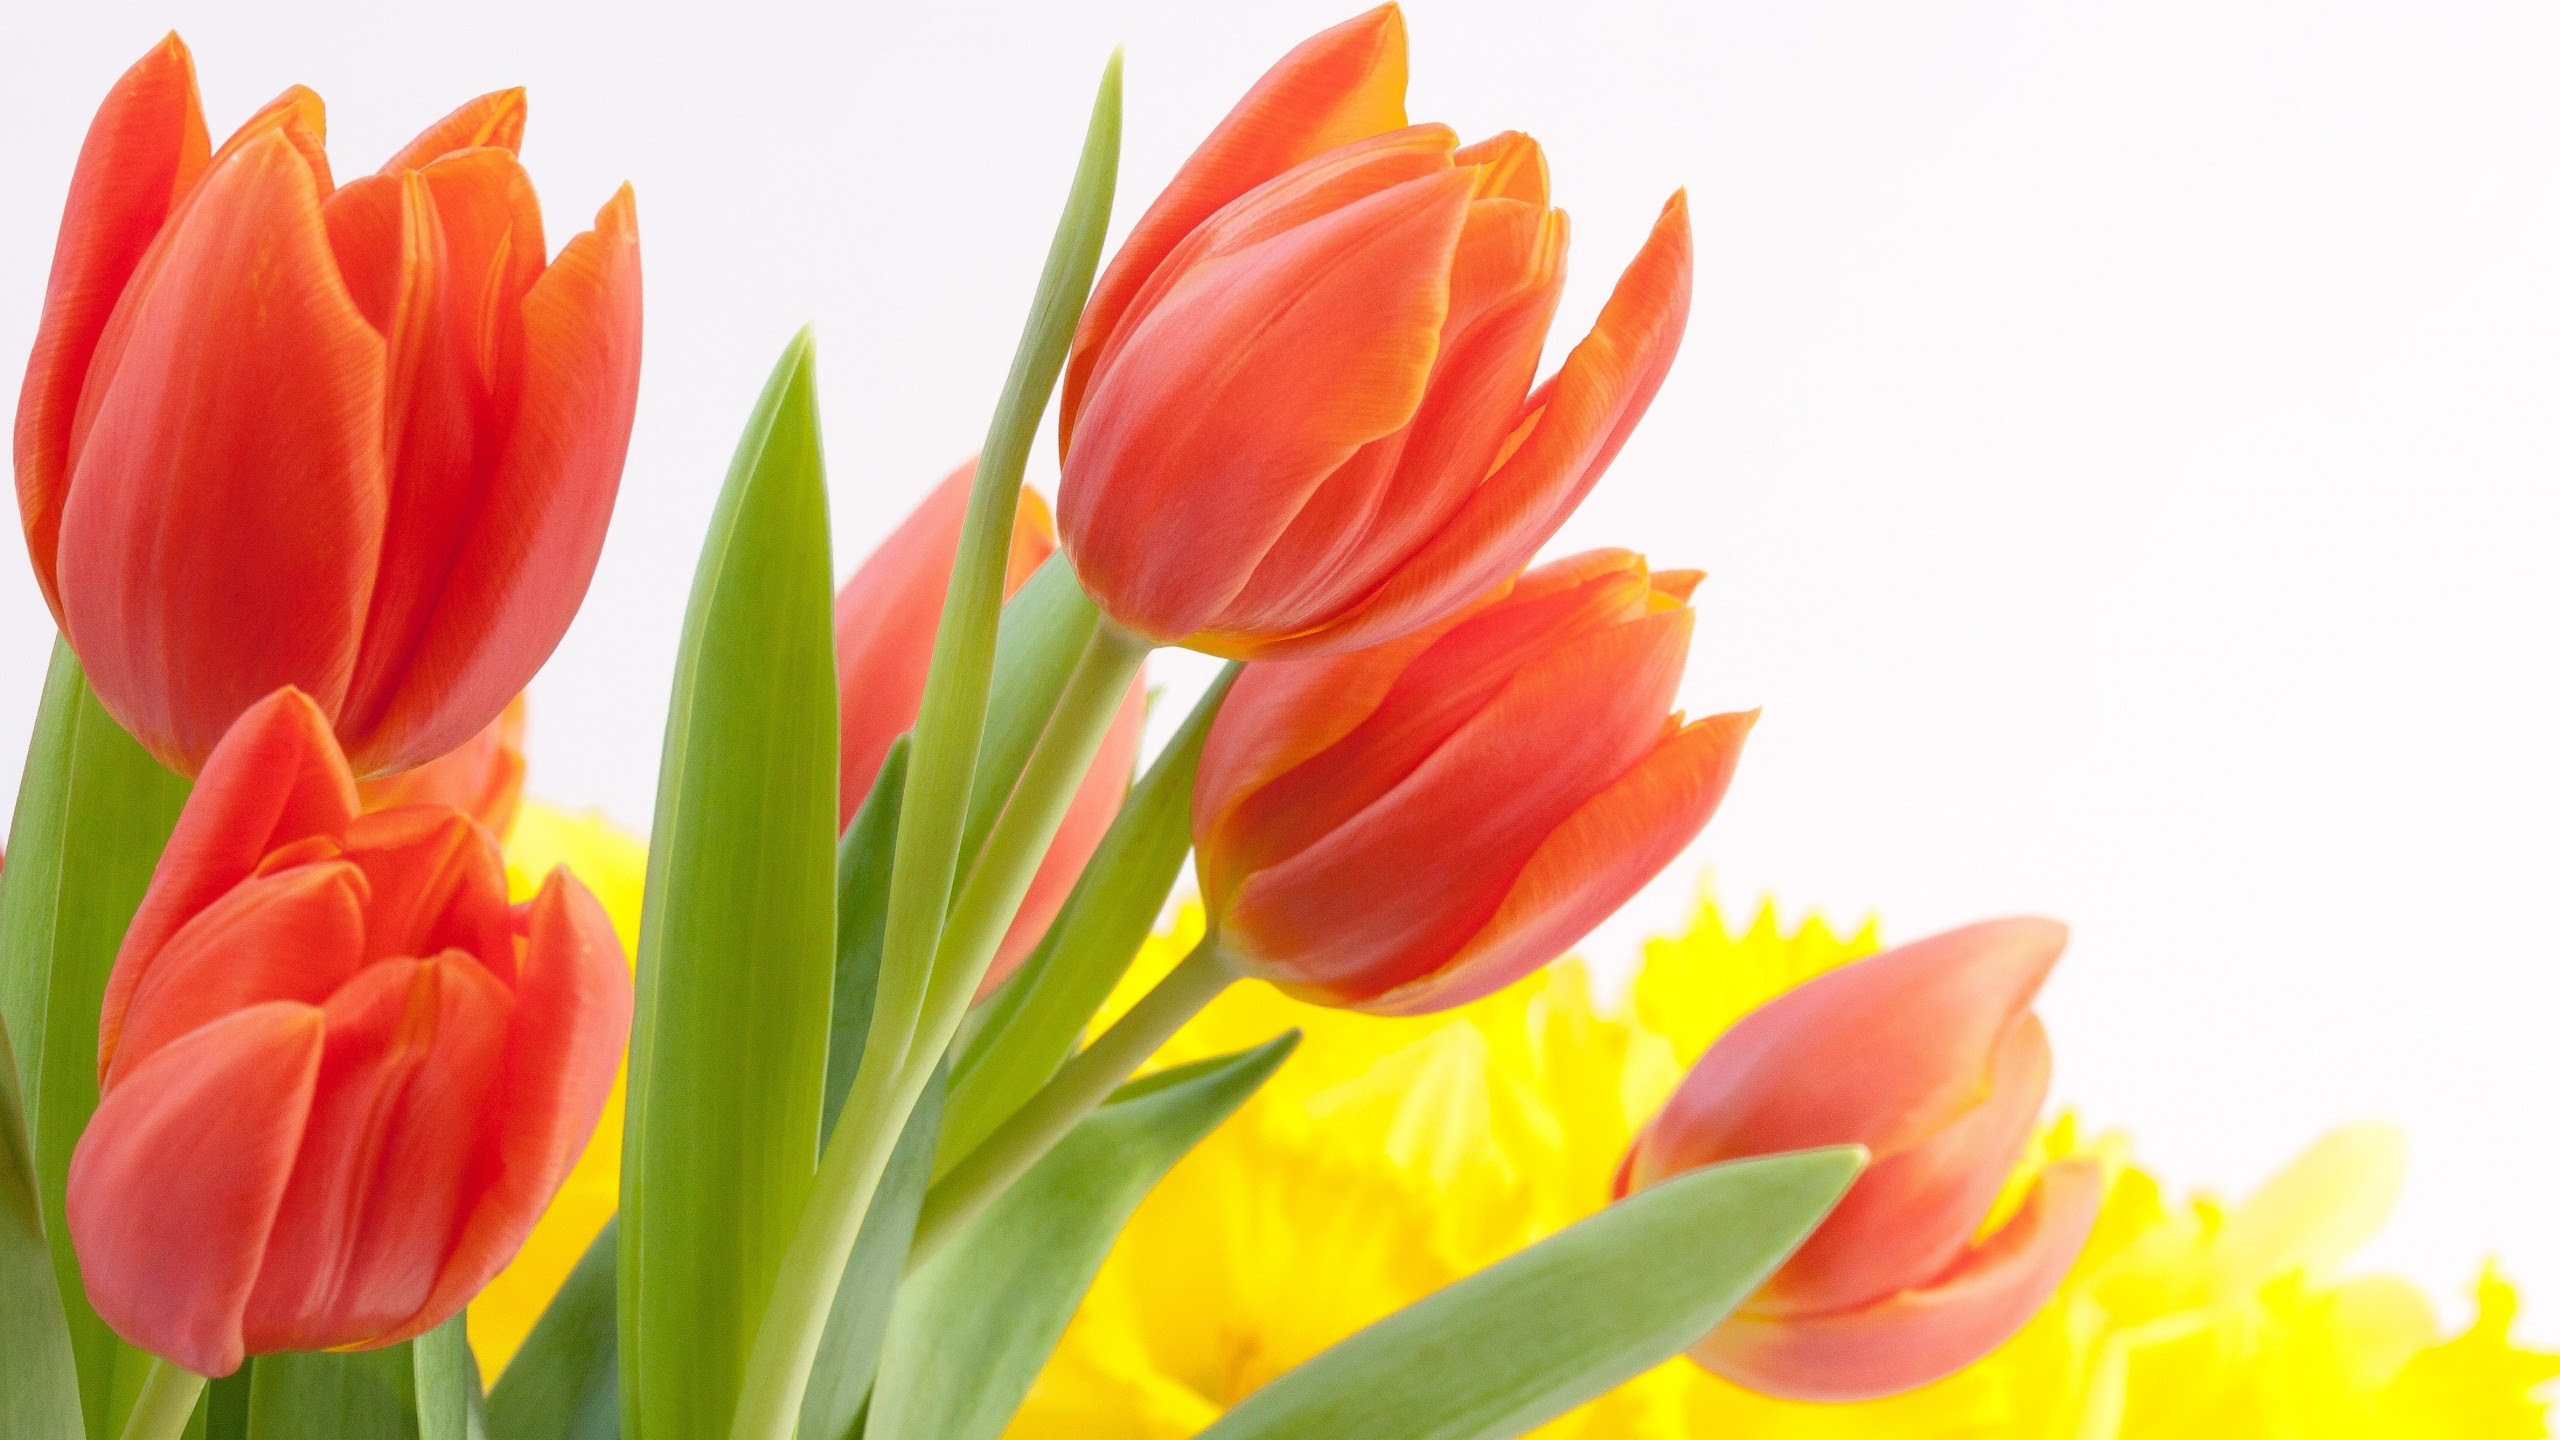 Tulip Flowers Hd Wallpapers Free Download 2560x1440